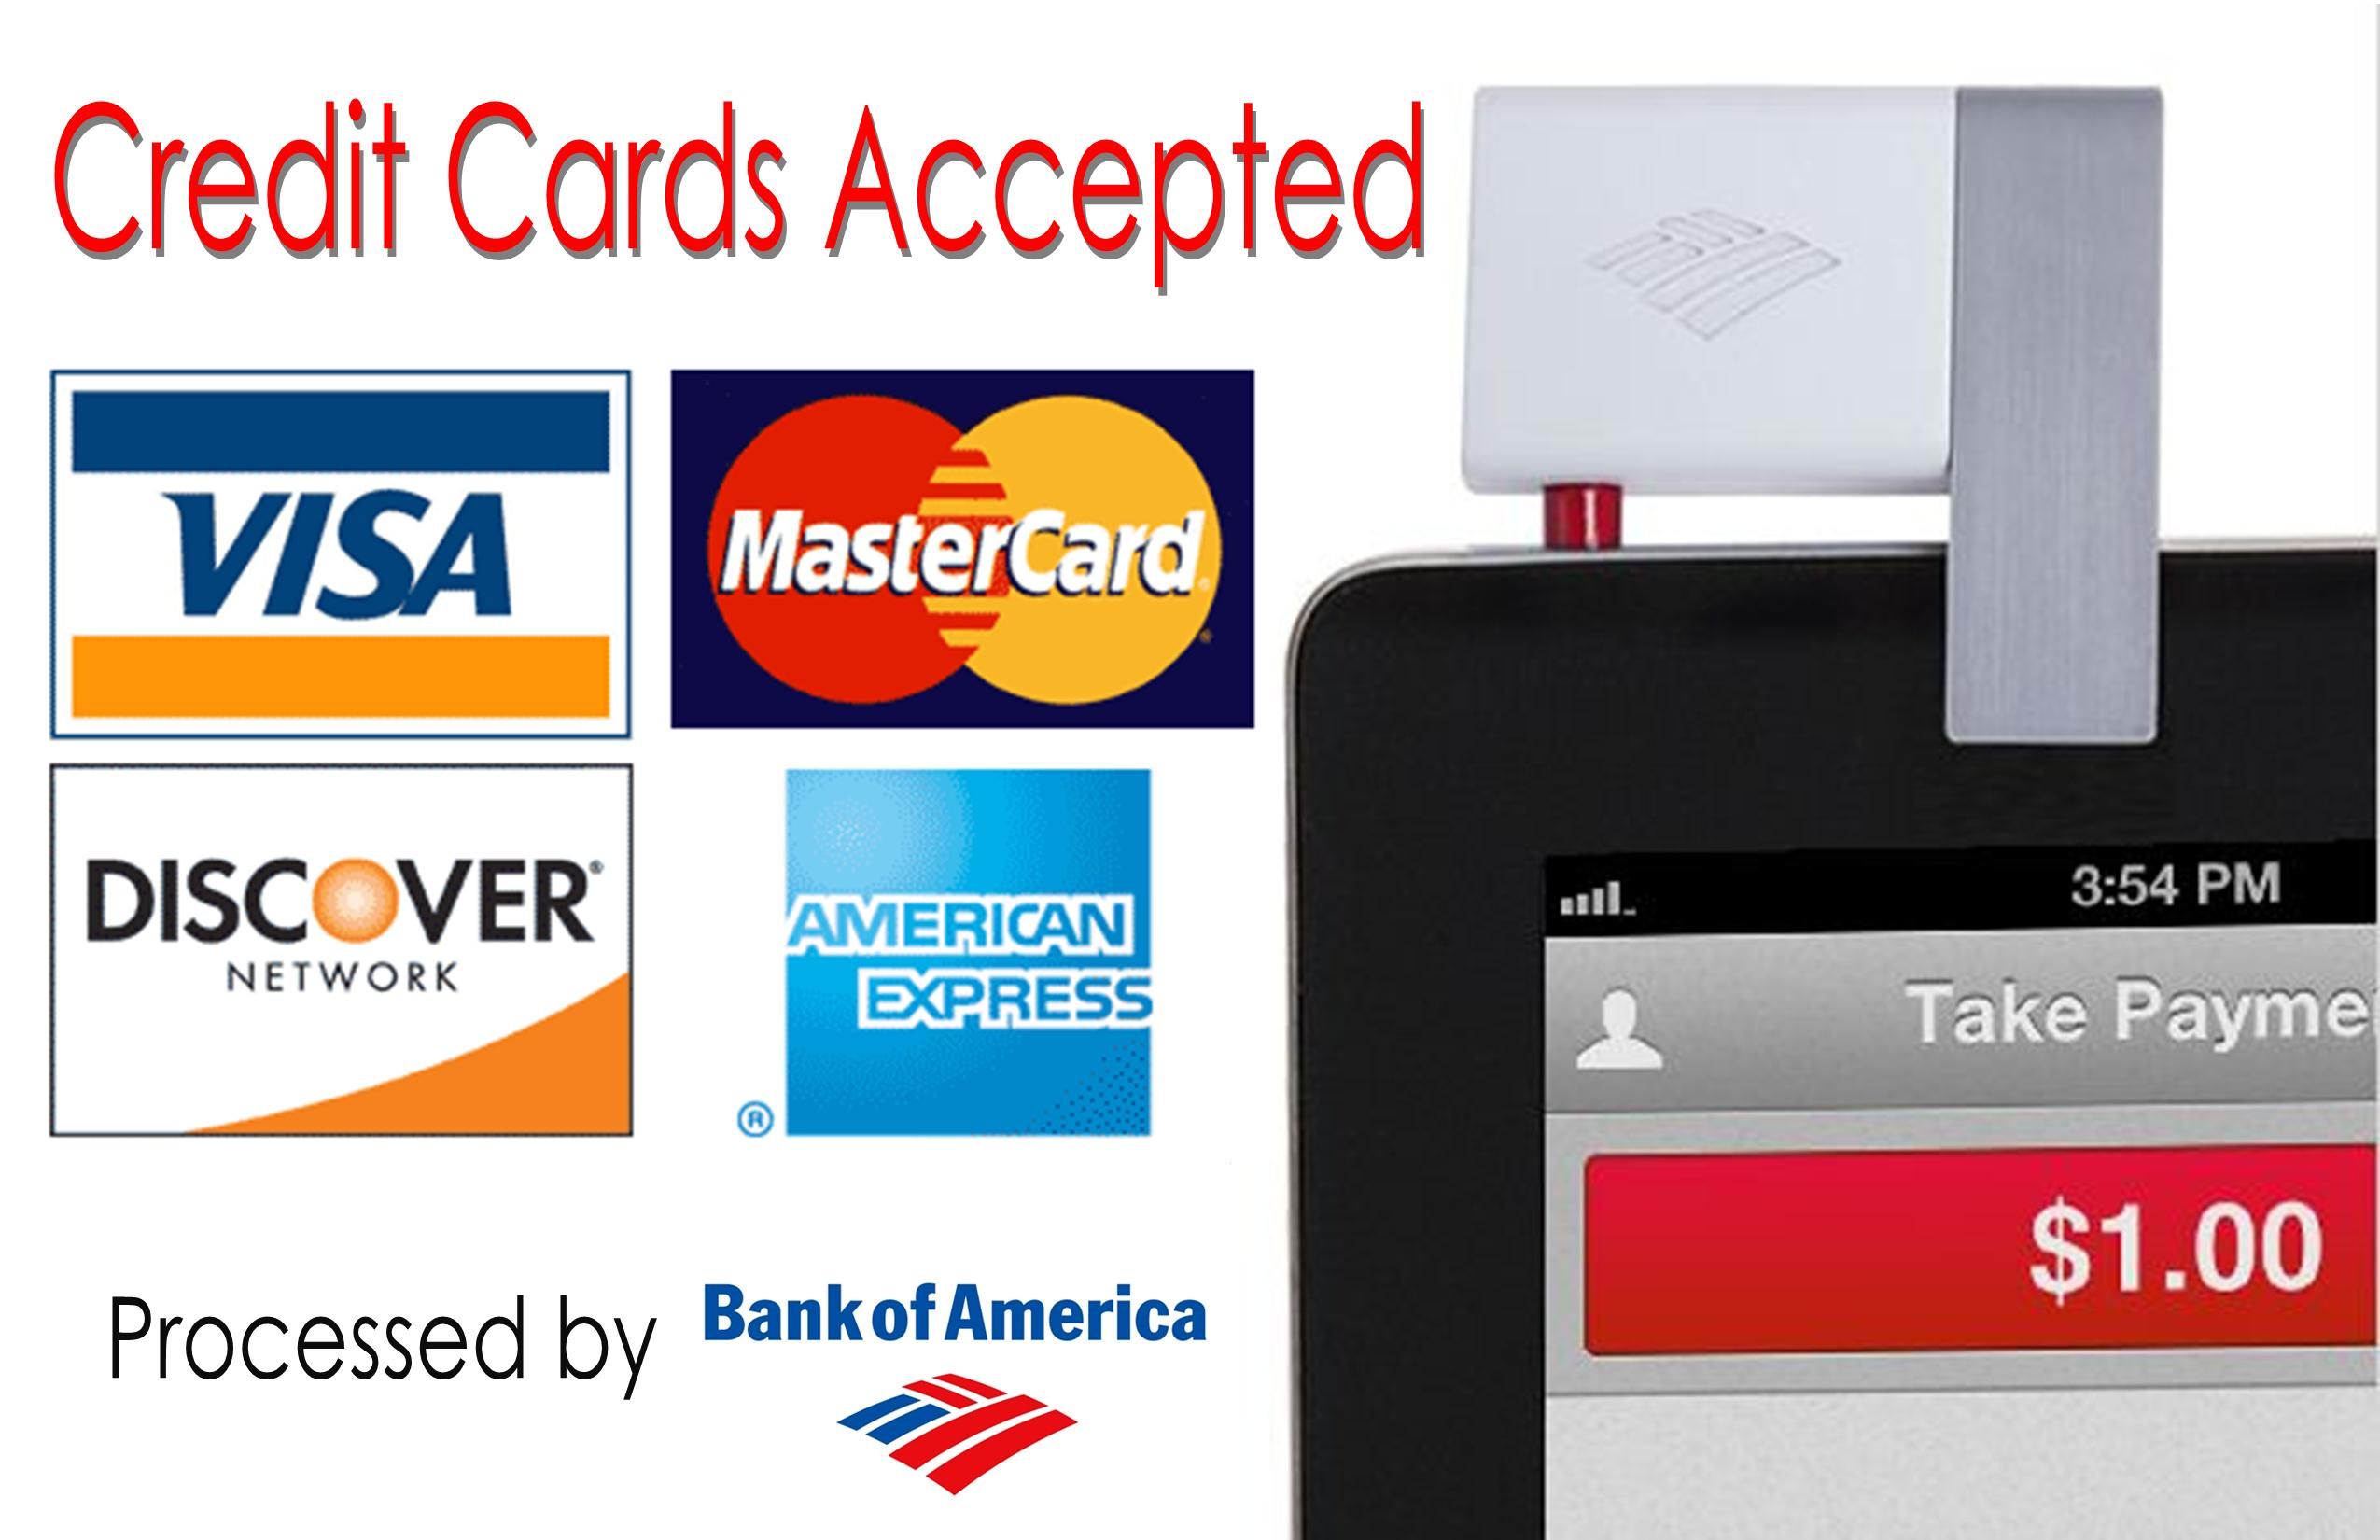 Credit Cards Accepted_DK Dogs